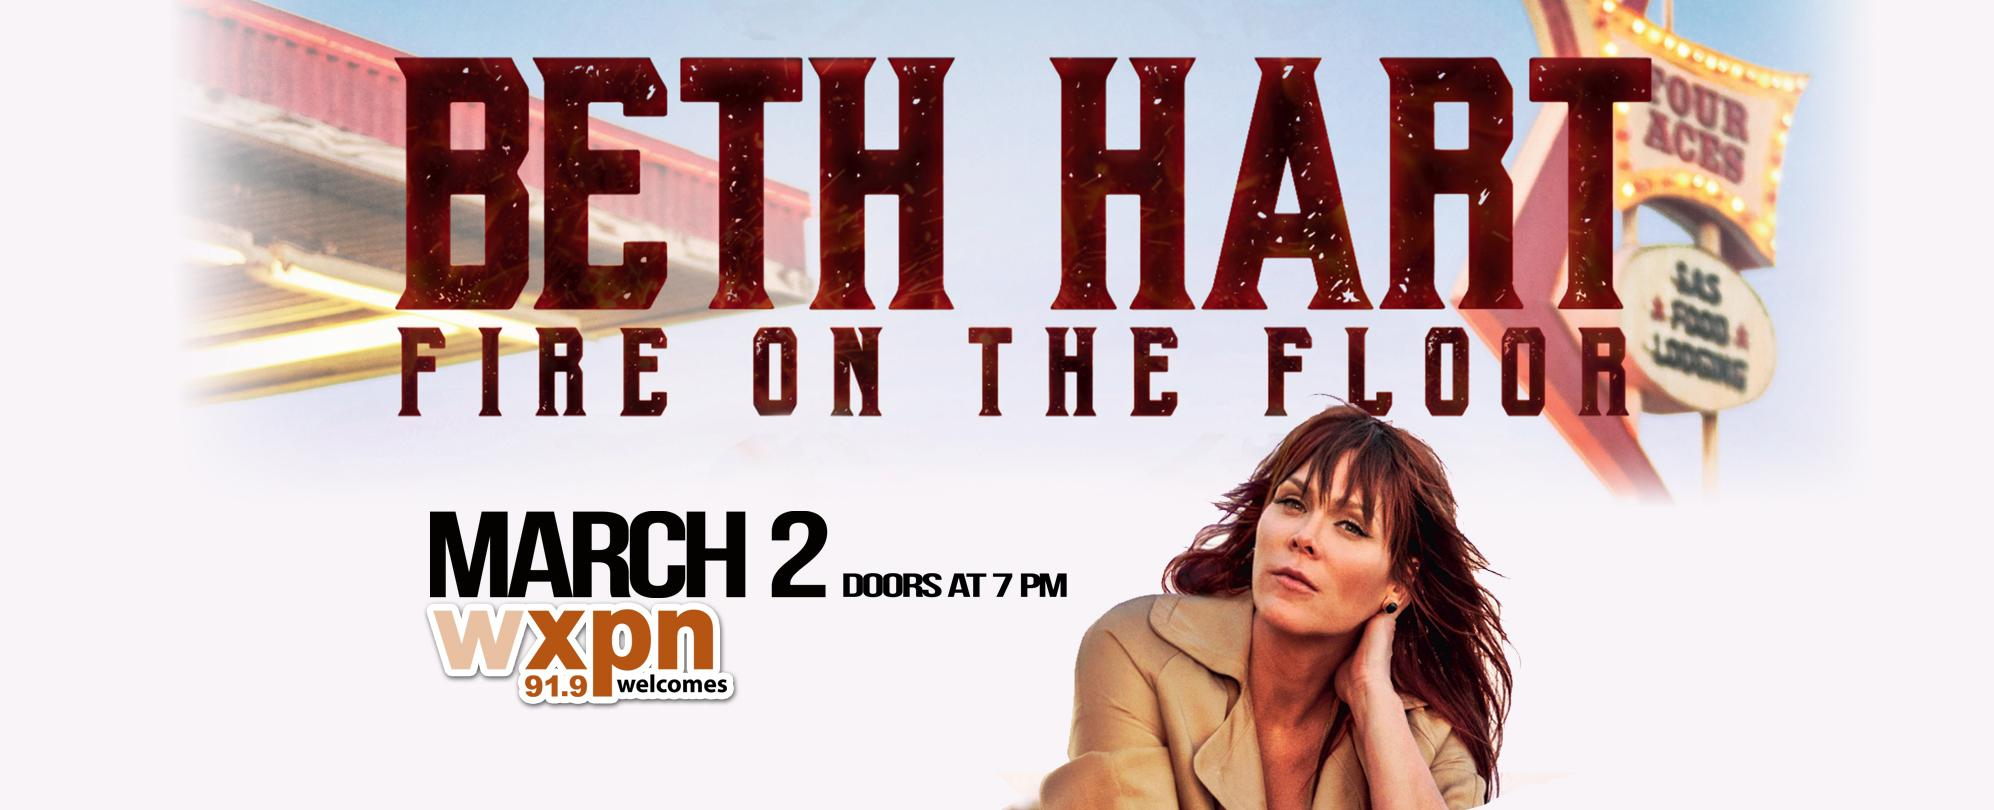 WXPN Welcomes: Beth Hart